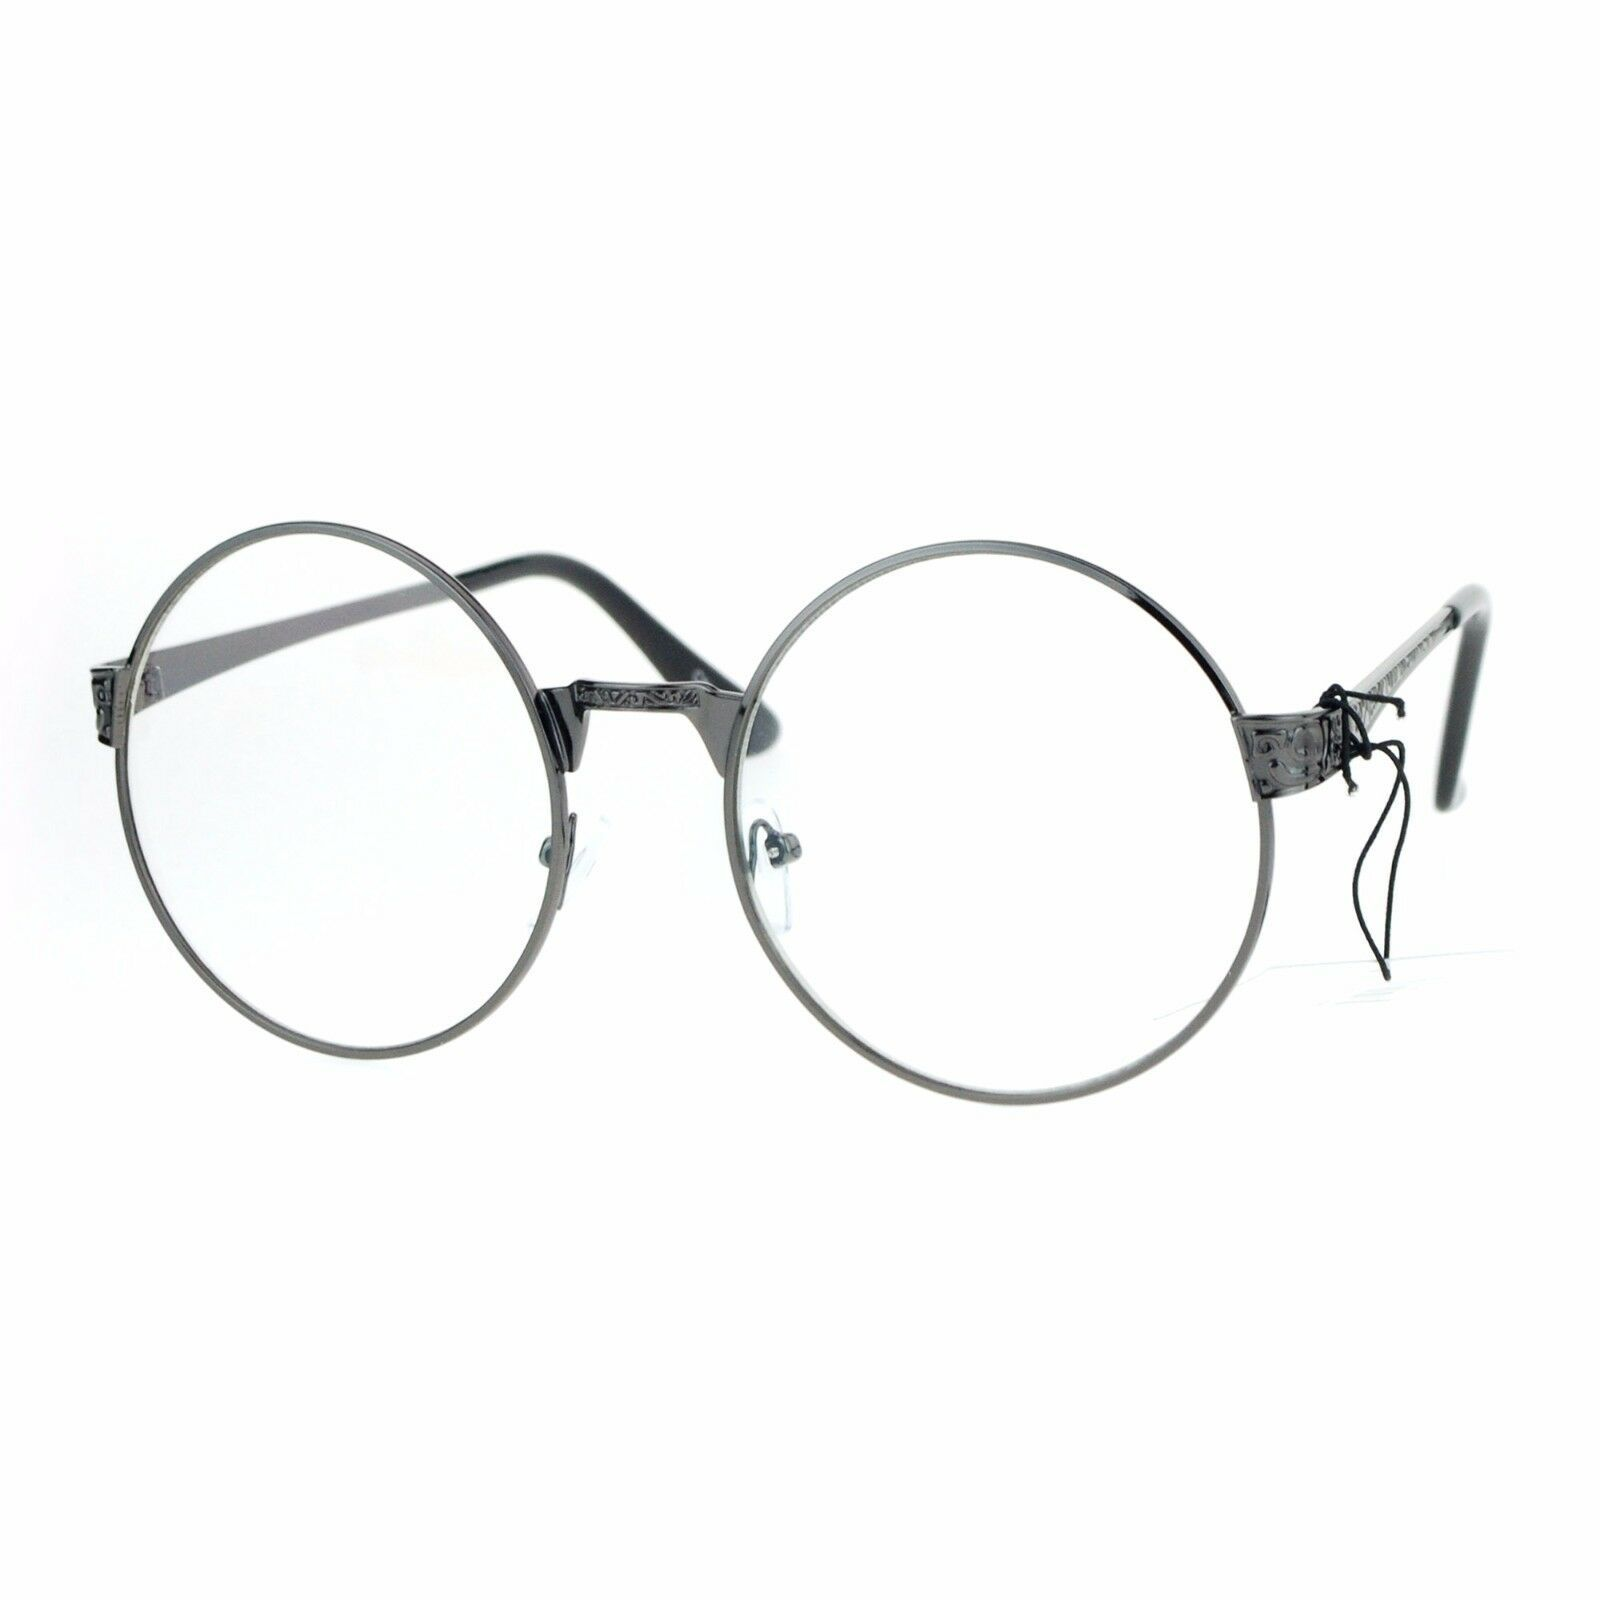 Womens Clear Lens Glasses Vintage Style Round Circle Metal Frame Eyeglasses